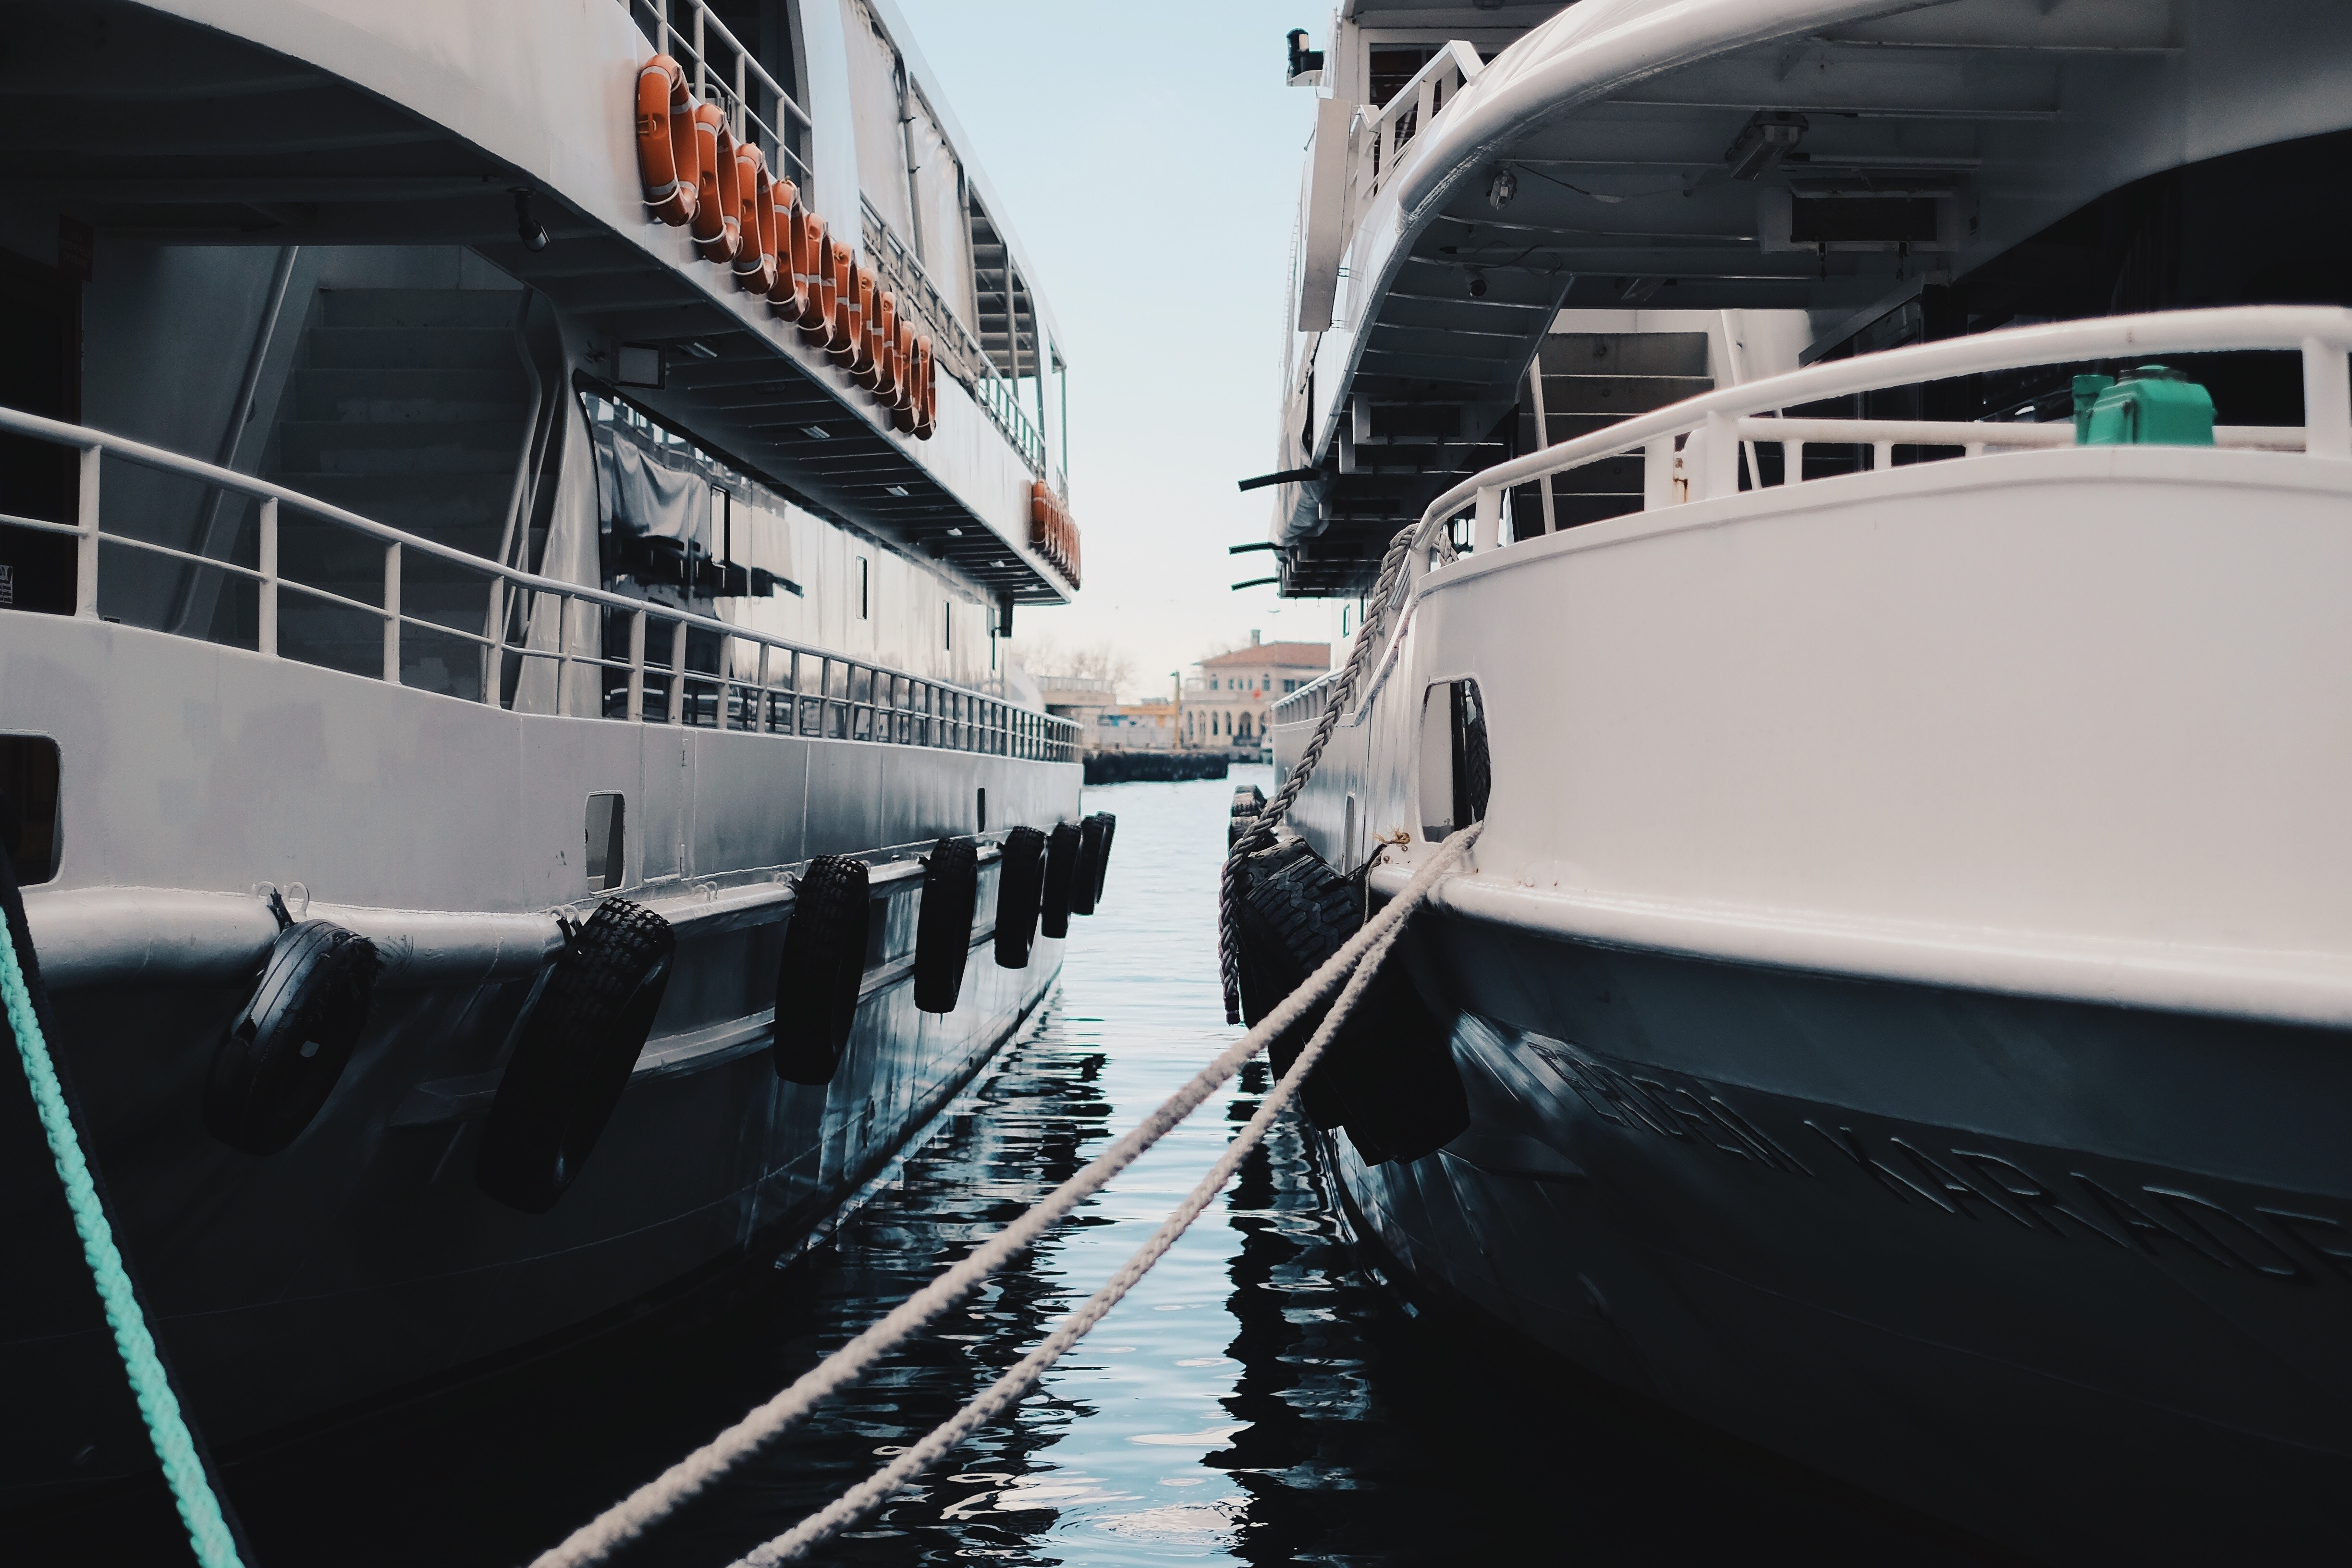 59931 download wallpaper Miscellanea, Miscellaneous, Ships, Sea, Berth, Wharf, Yachts screensavers and pictures for free